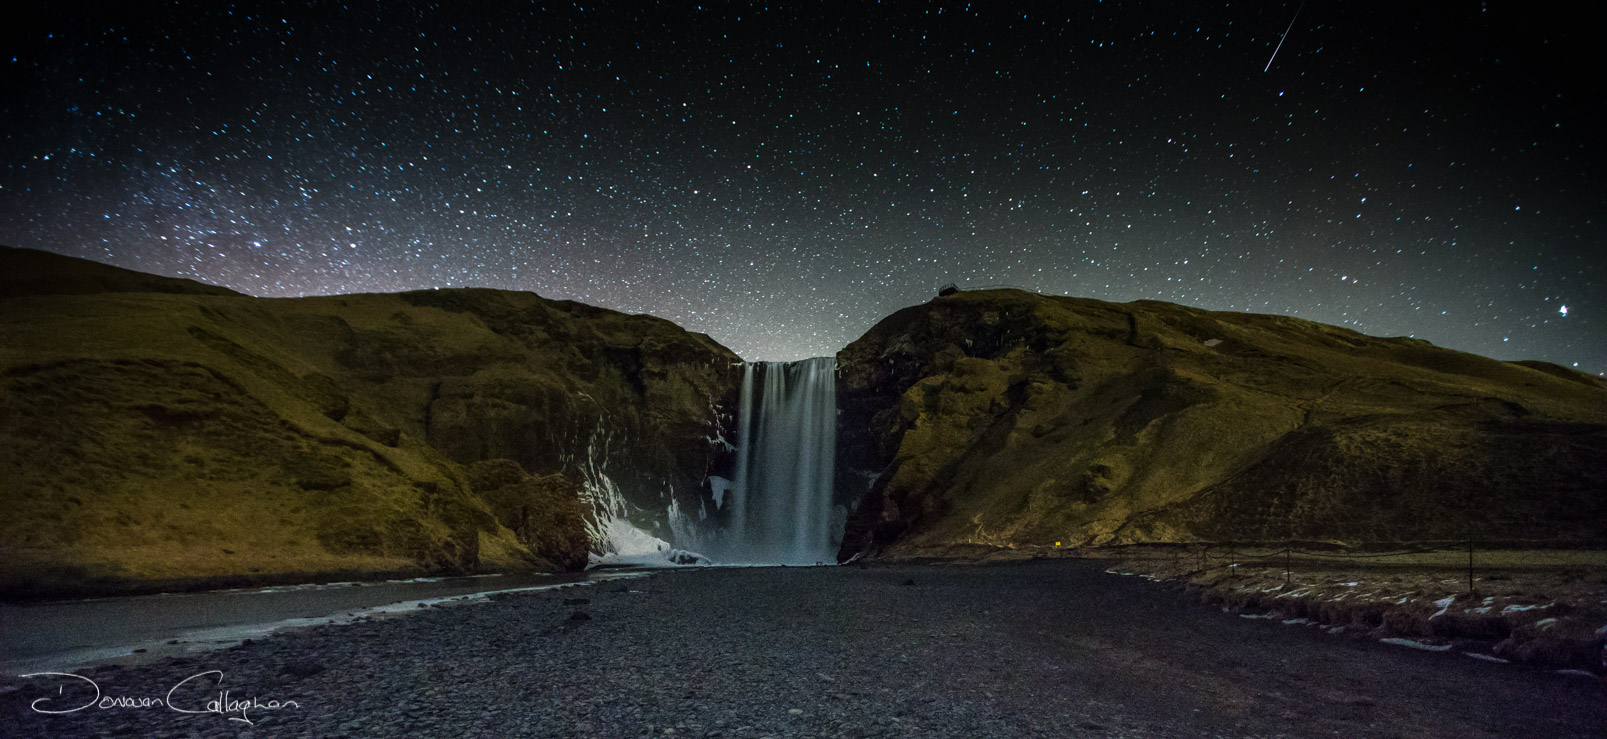 Skogafoss waterfall at night, Iceland